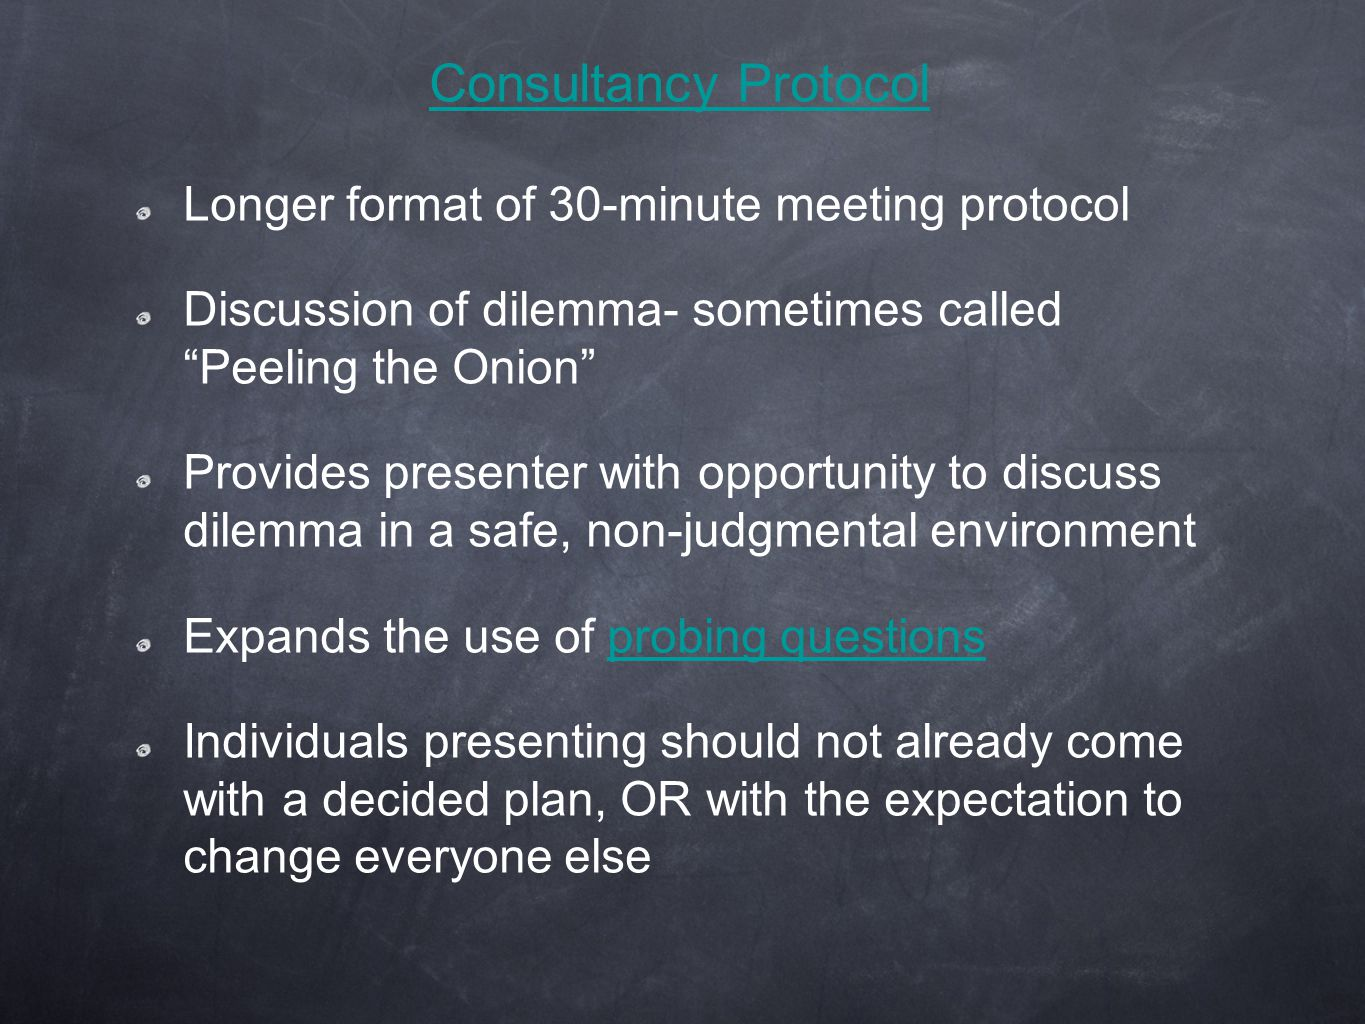 Consultancy Protocol Longer format of 30-minute meeting protocol Discussion of dilemma- sometimes called Peeling the Onion Provides presenter with opportunity to discuss dilemma in a safe, non-judgmental environment Expands the use of probing questionsprobing questions Individuals presenting should not already come with a decided plan, OR with the expectation to change everyone else